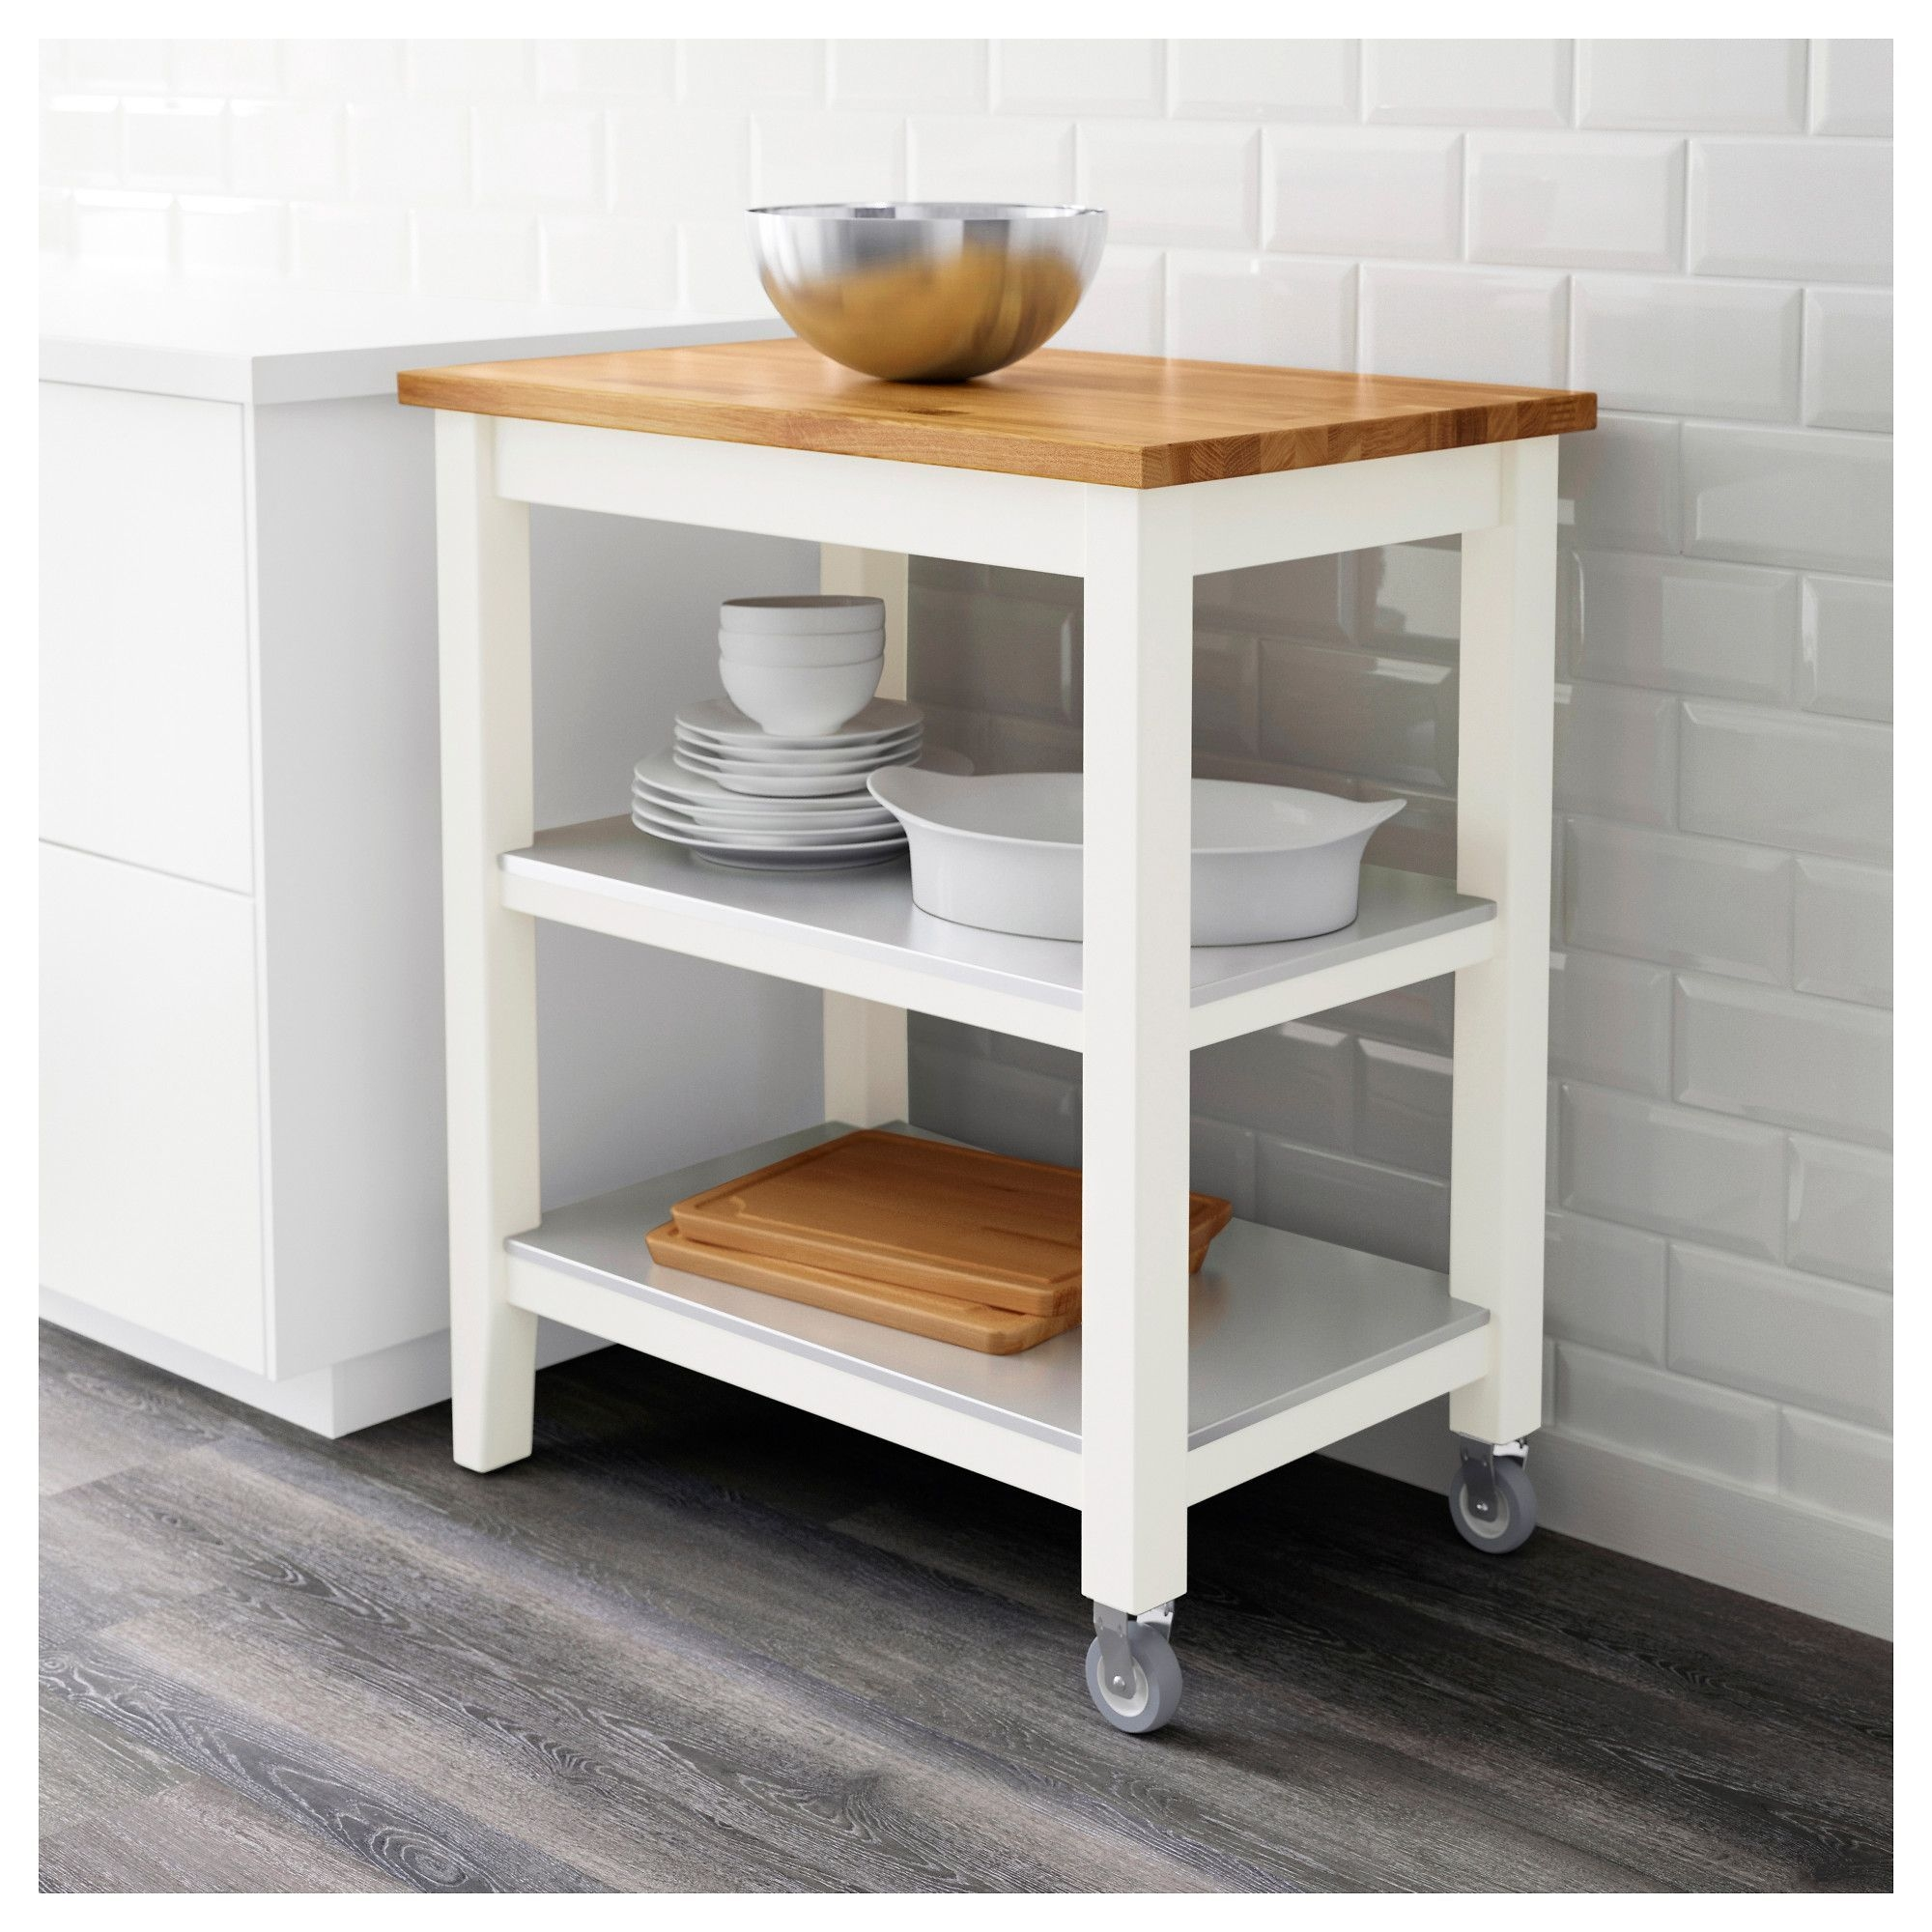 50 Ikea Kitchen Islands Youll Love In 2020 Visual Hunt